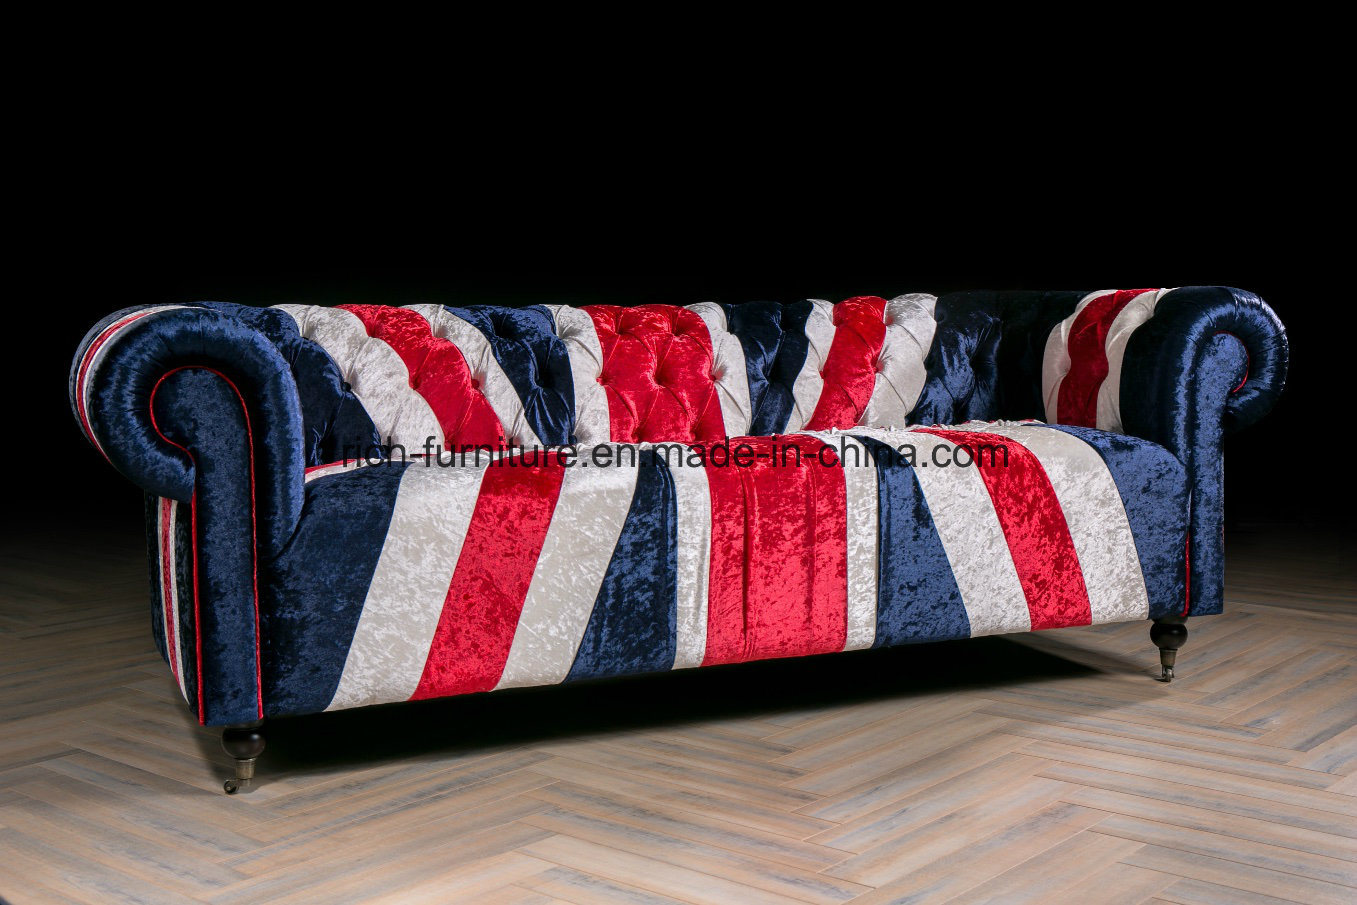 Picture of: China Vintage Elegant Style Union Jack Fabric Sofa For Living Room China Chesterfield Sofa Vintage Leather Sofa